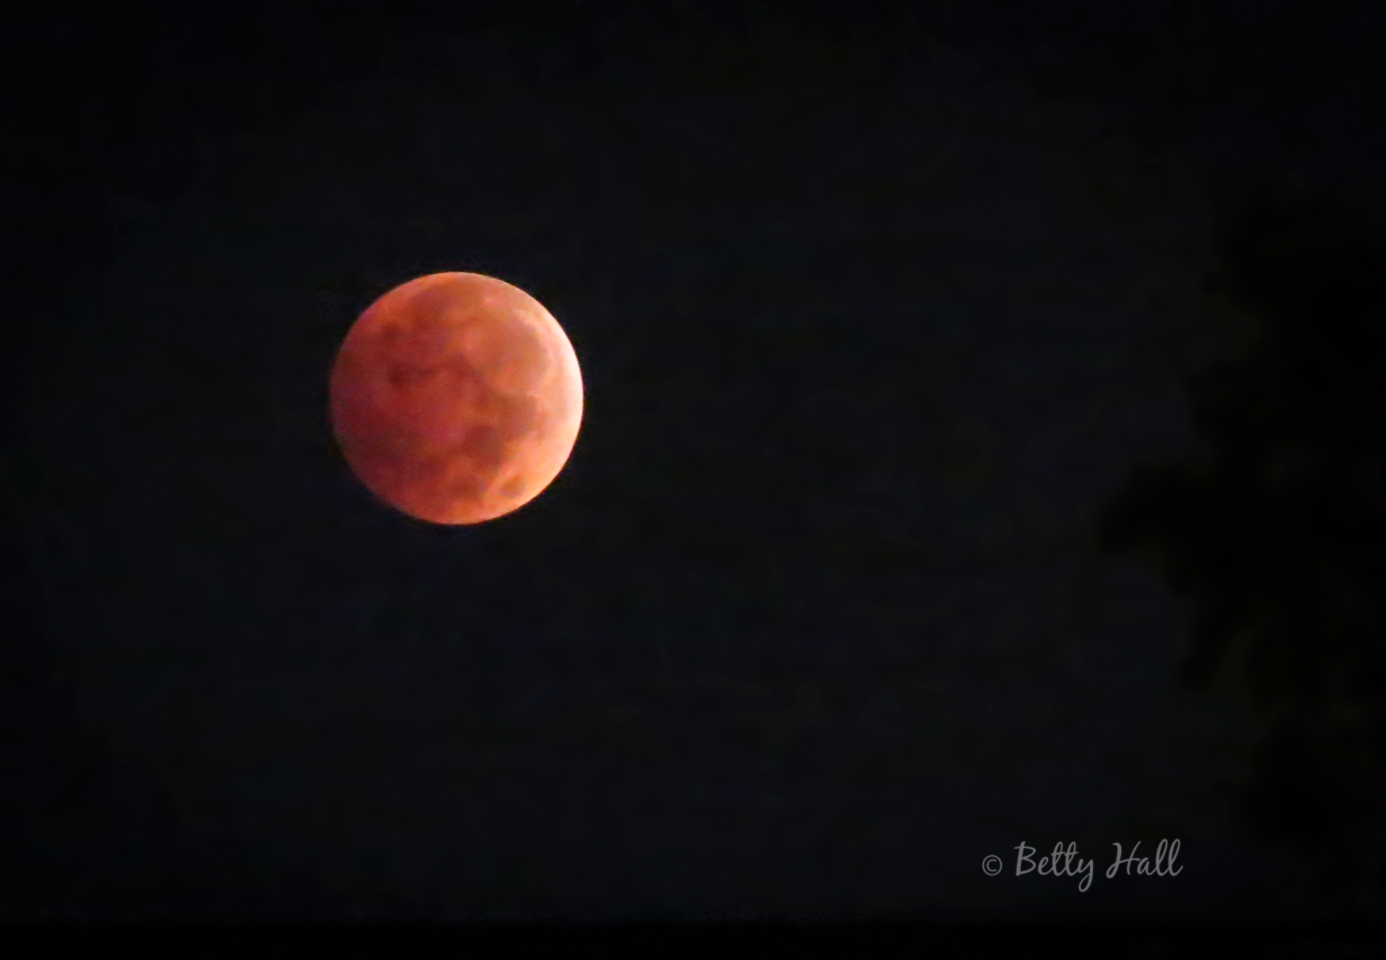 Partial eclipse of moon